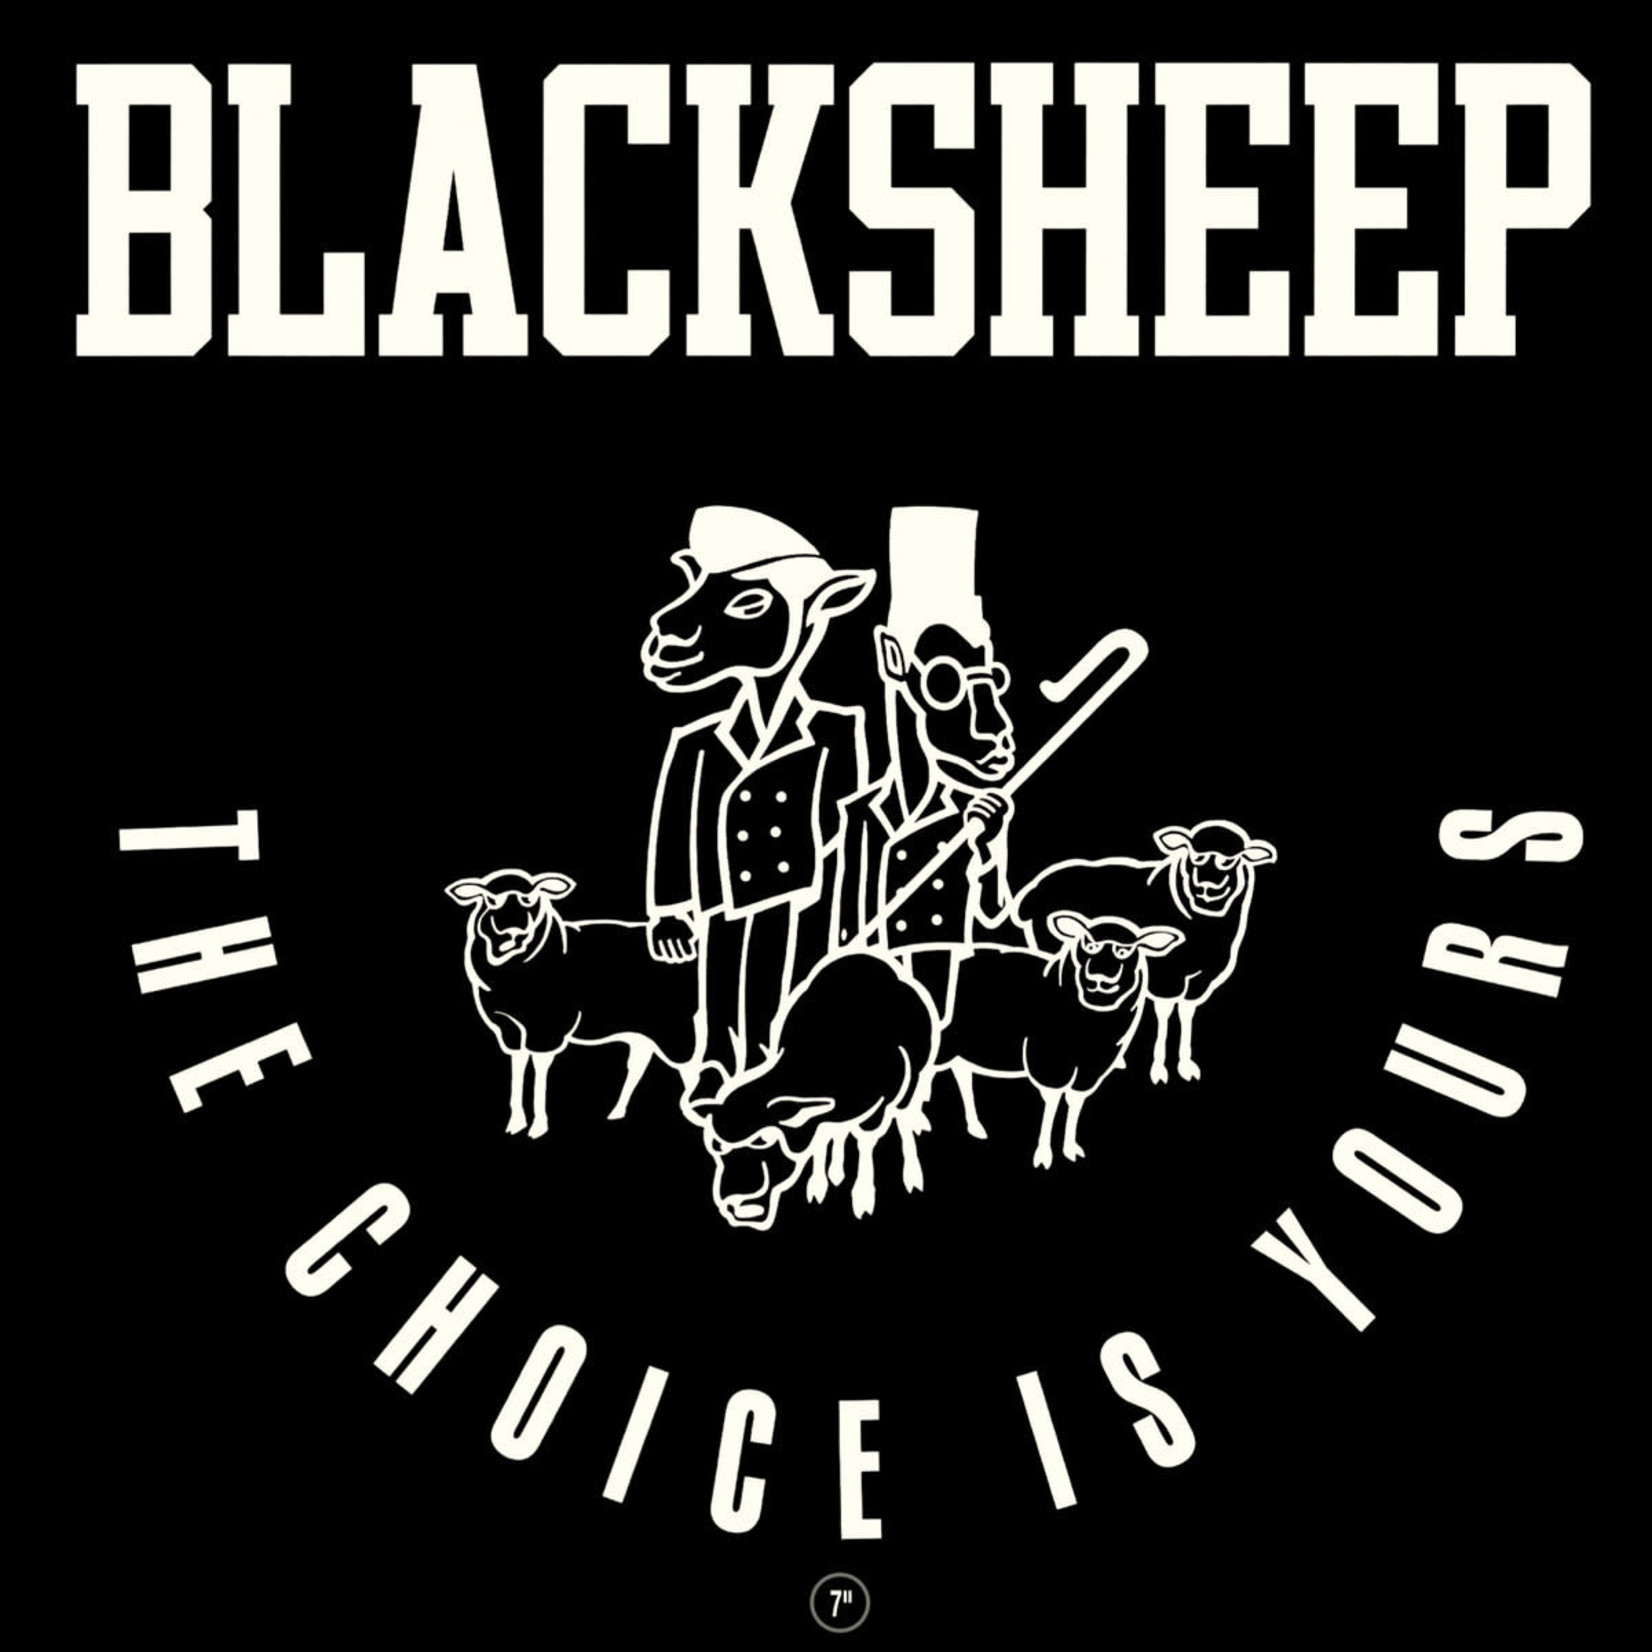 [New] Black Sheep: The Choice Is Yours (7'')